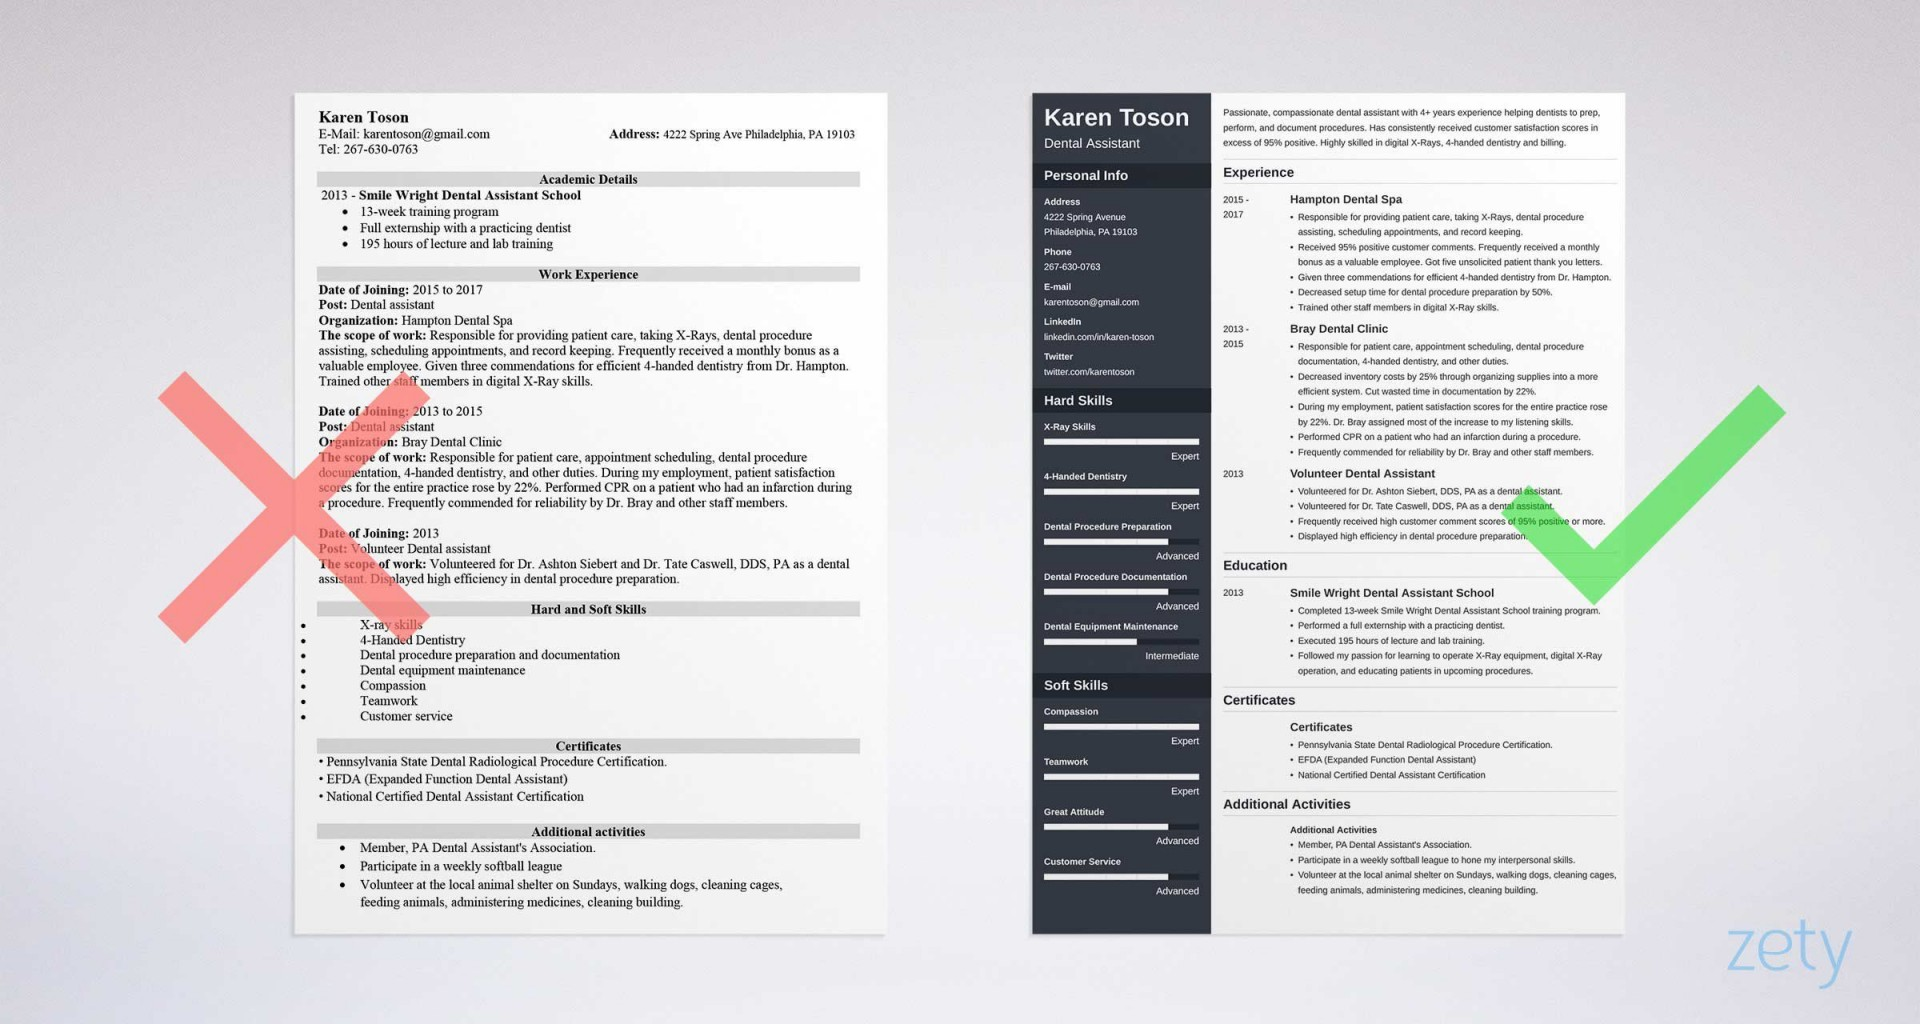 003 Shocking 1 Page Resume Template Highest Quality  Templates One Basic Word Free Html Download1920